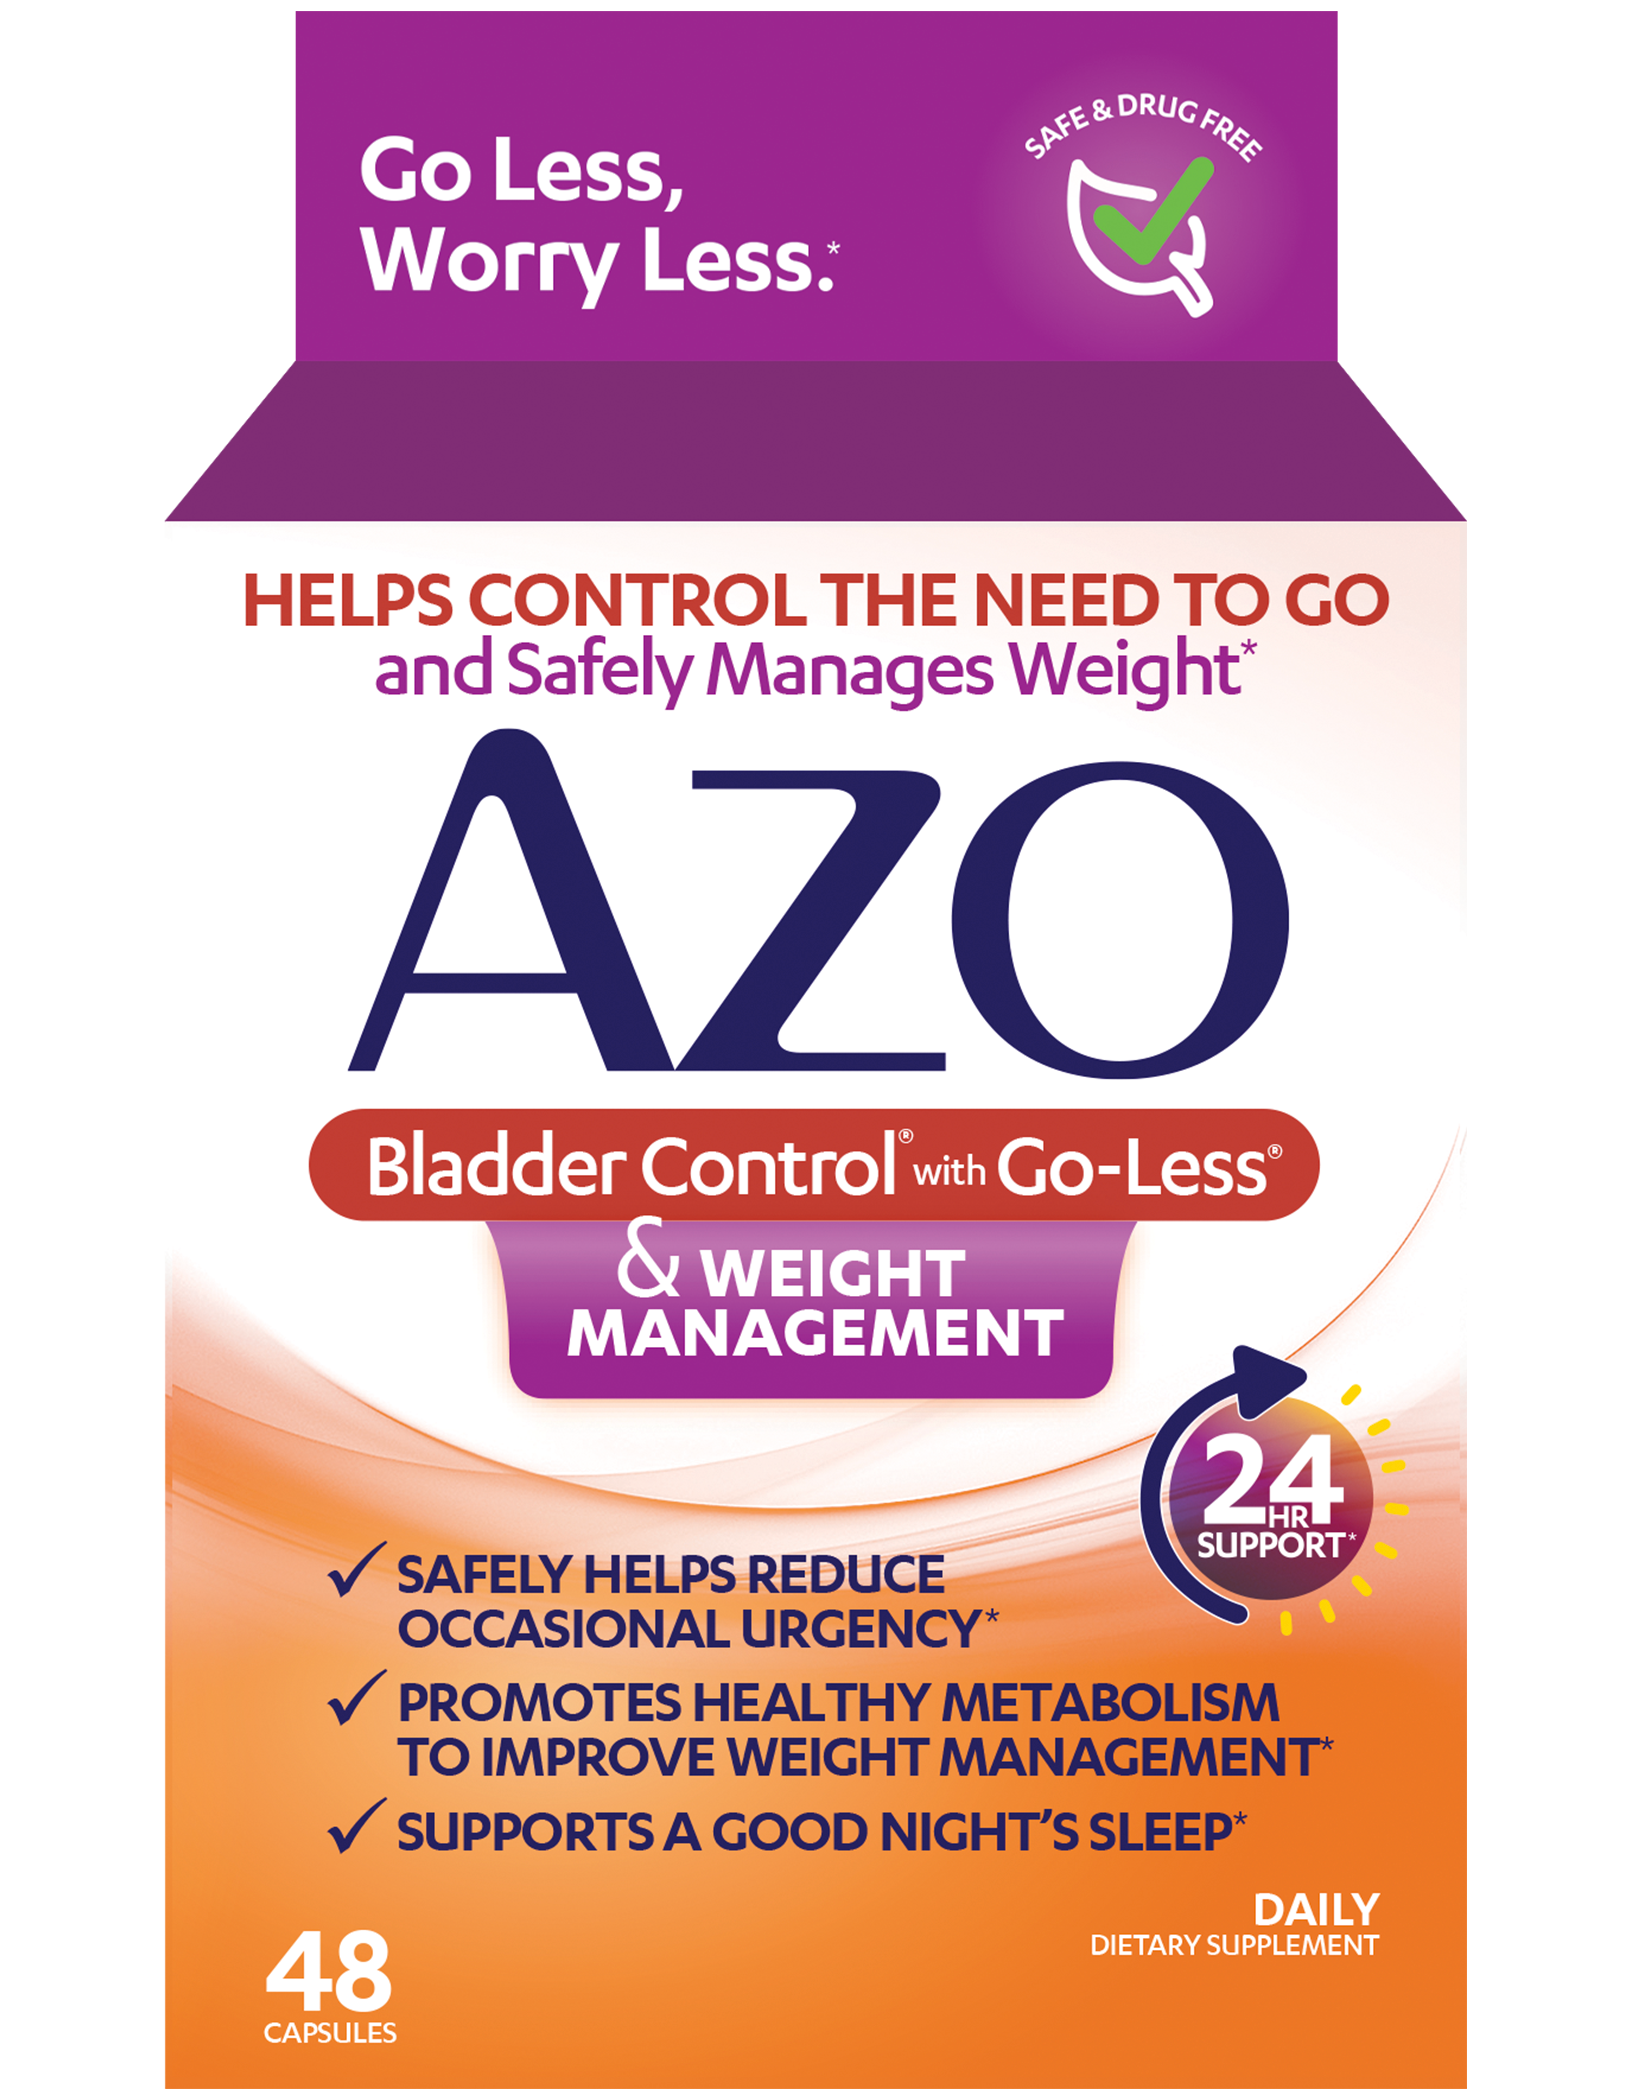 loss of bladder control while on diet pills